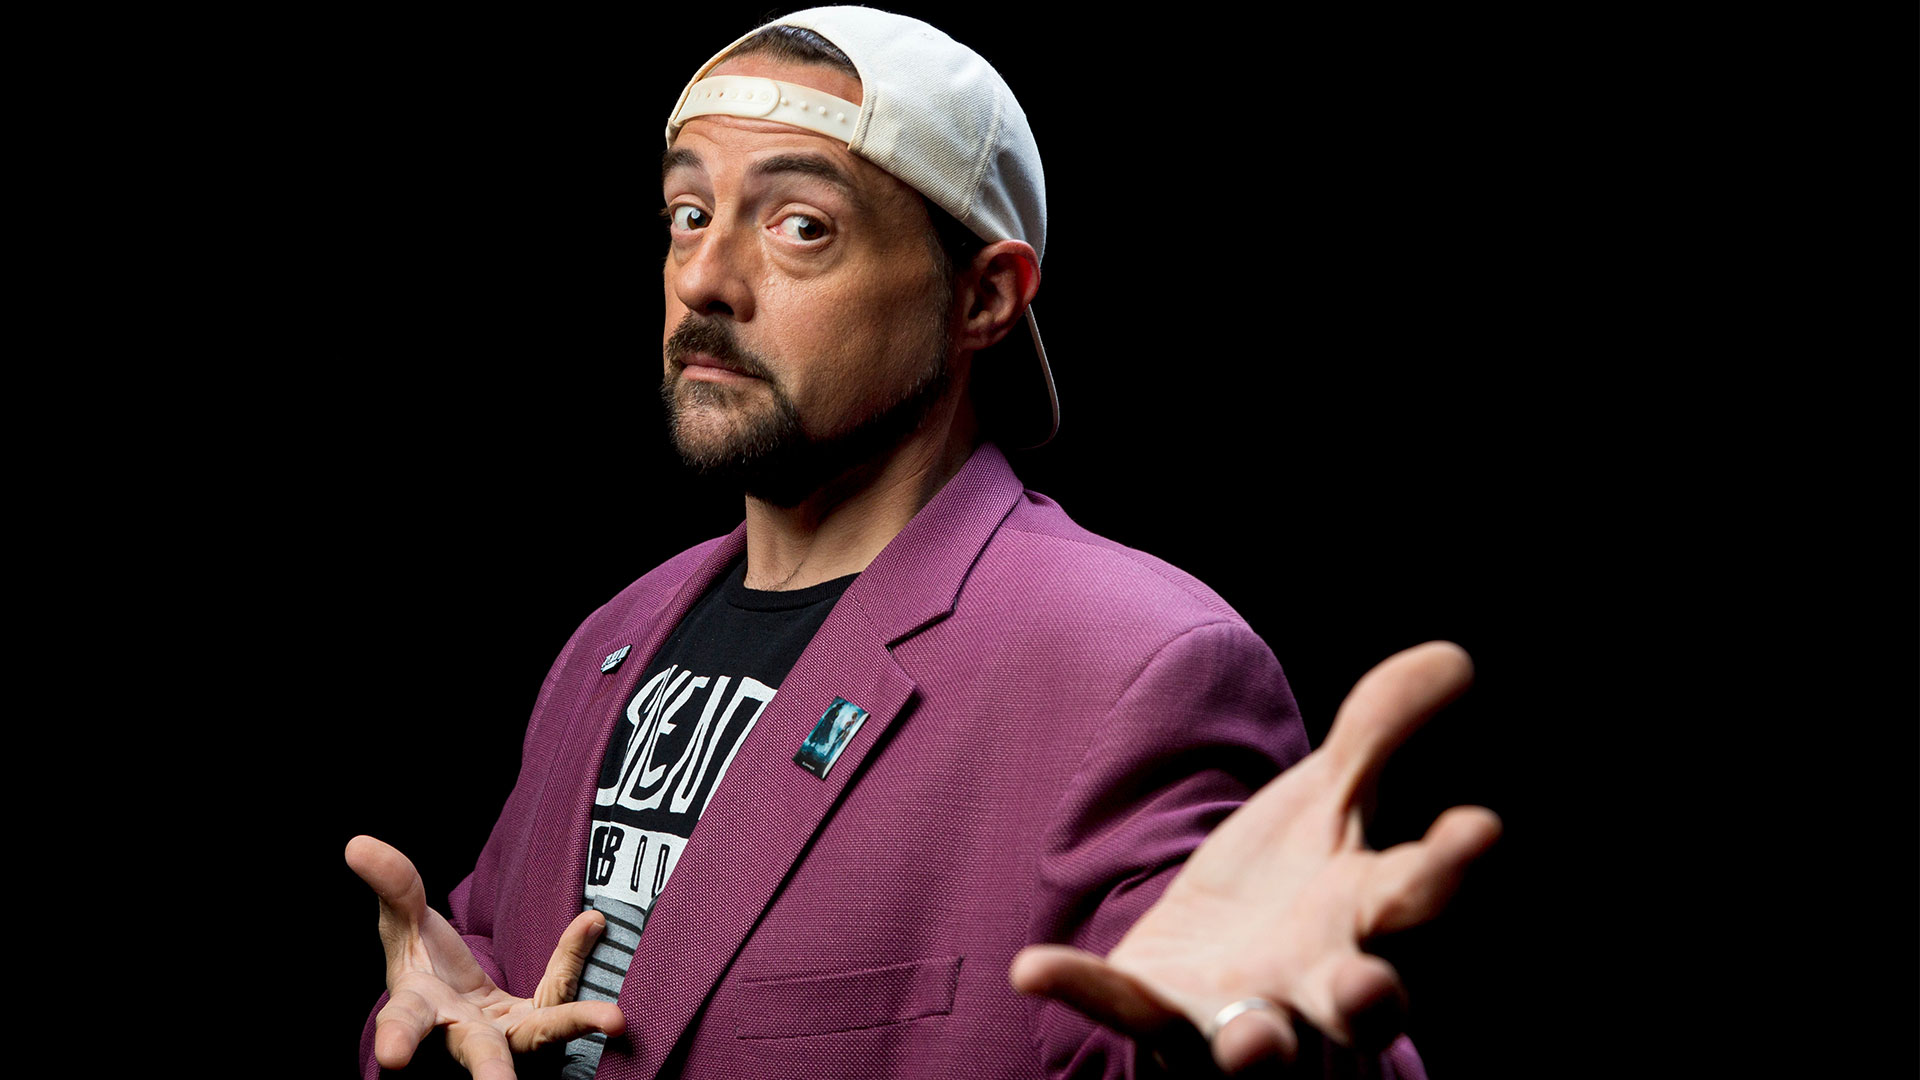 Kevin Smith on Podcasts and Why He Watched 'Infinity War' 20 Times